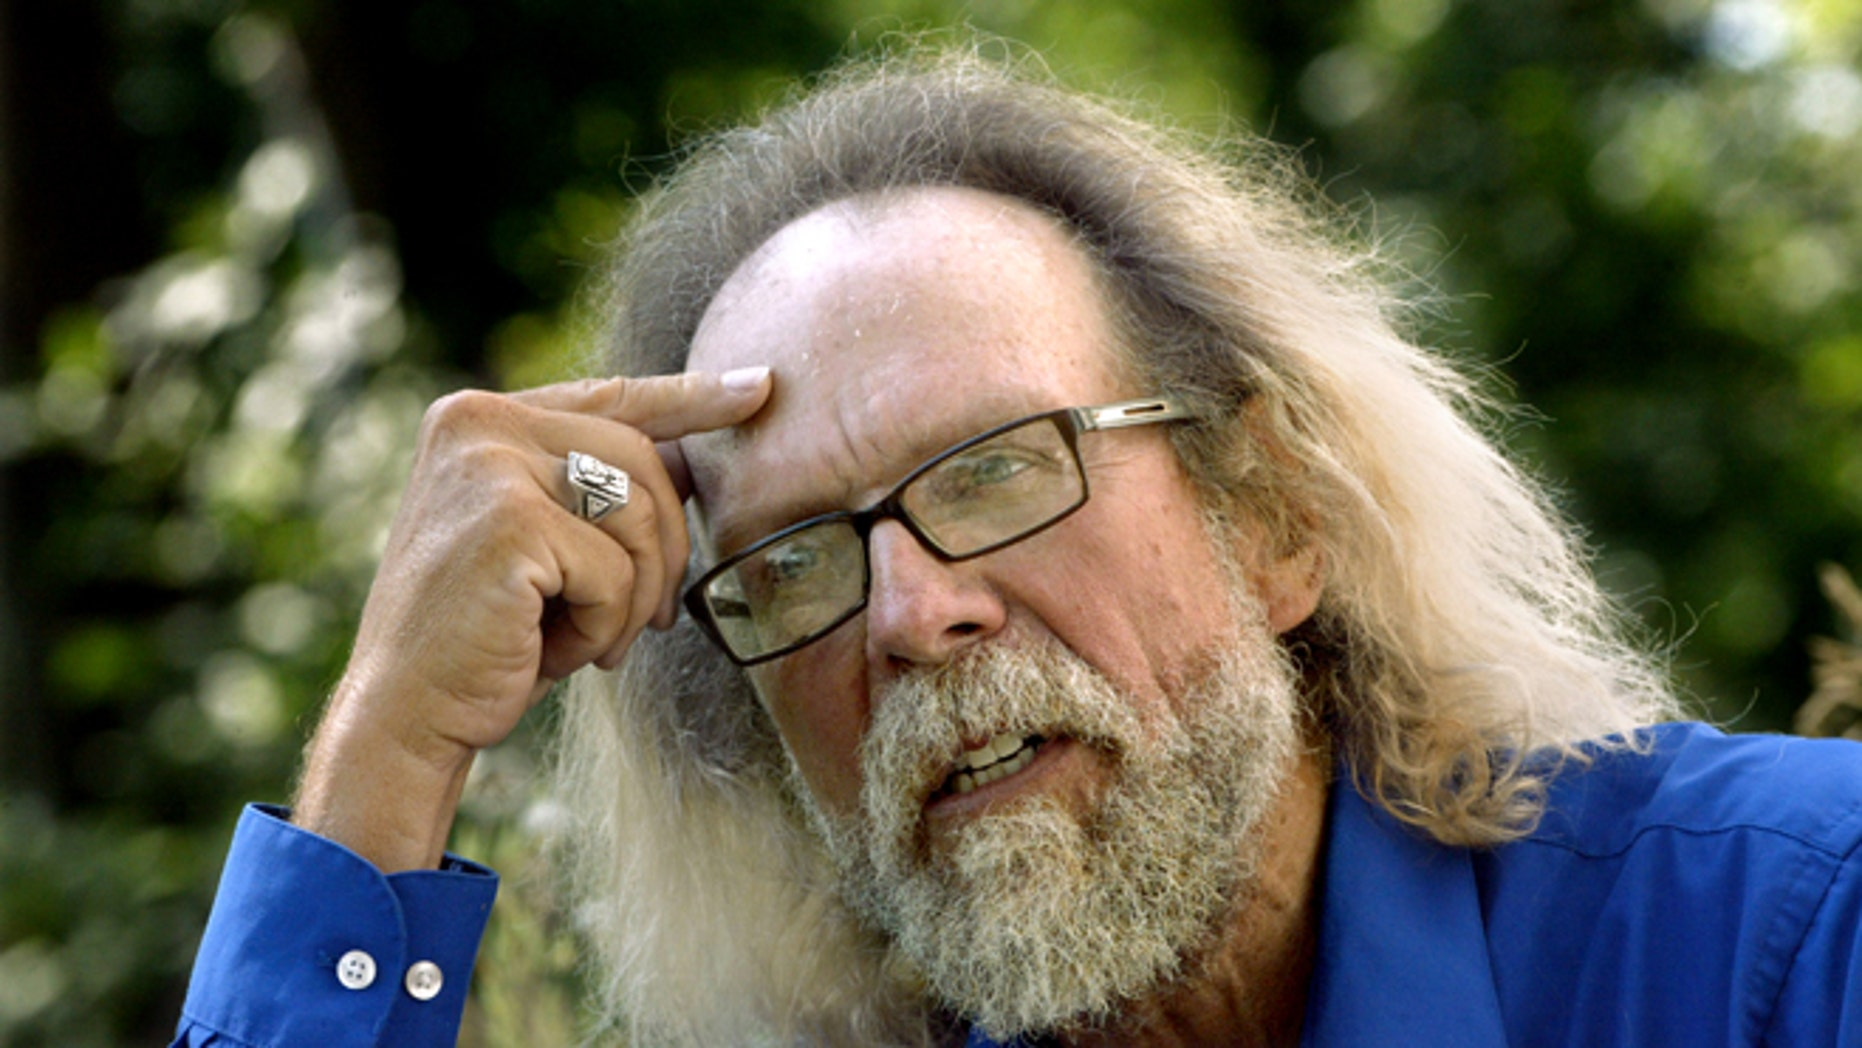 FILE 2013: White Supremacist Craig Cobb, 61, hopes to recruit more like-minded people as his neighbors in Leith.